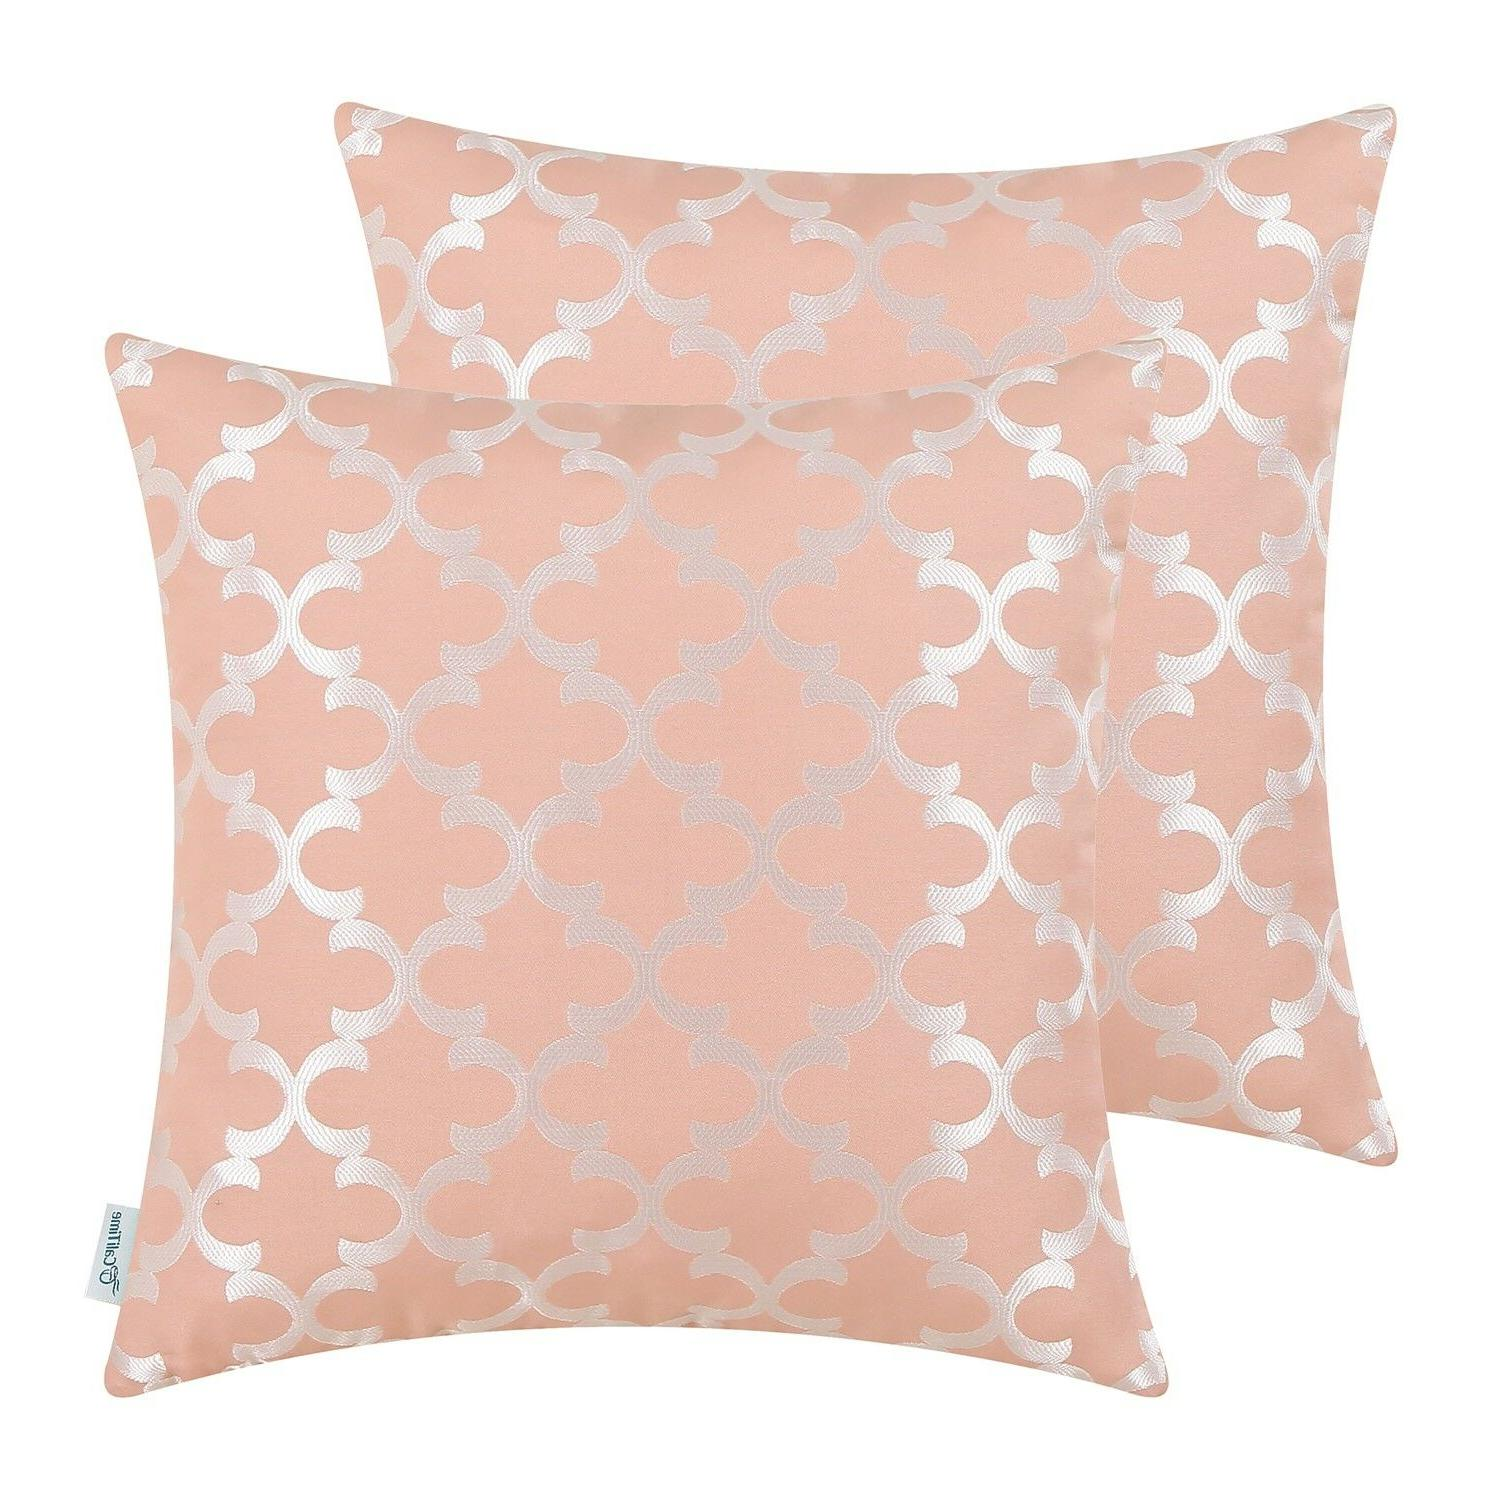 2Pcs Pillows Geometric 18x18""